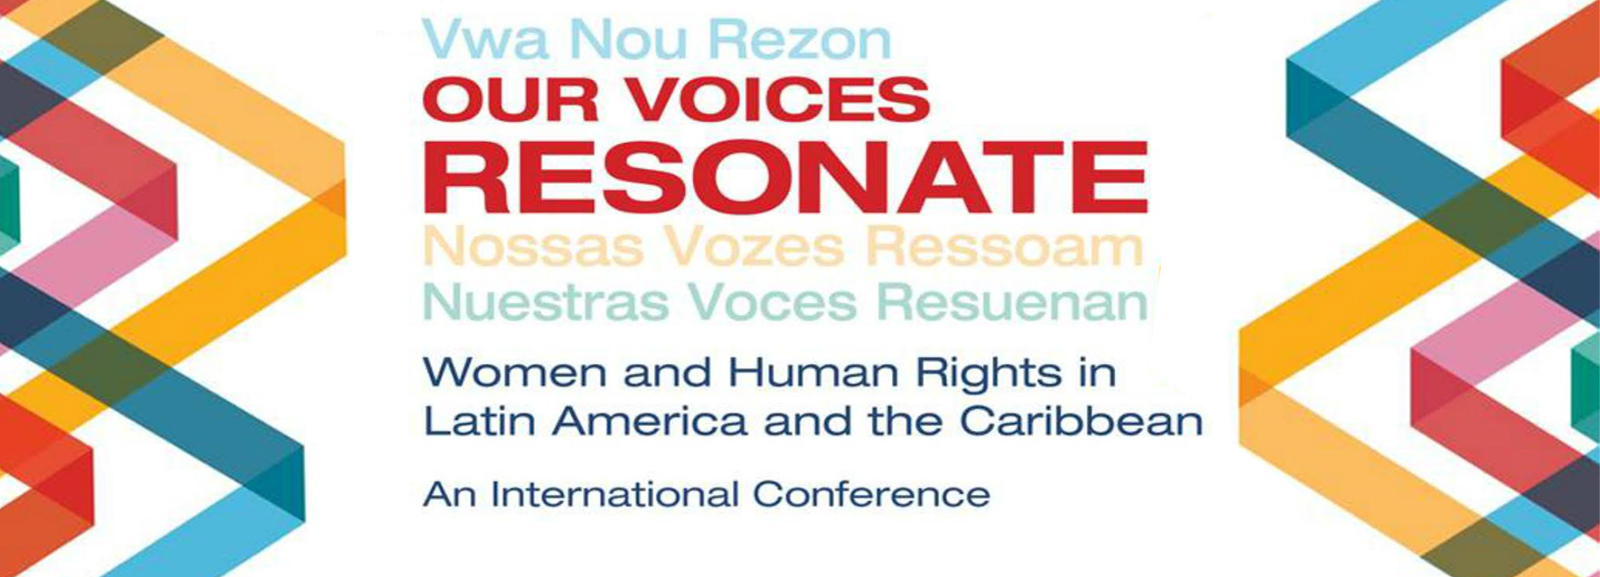 Registration now open for inaugural women's conference: Our Voices Resonate